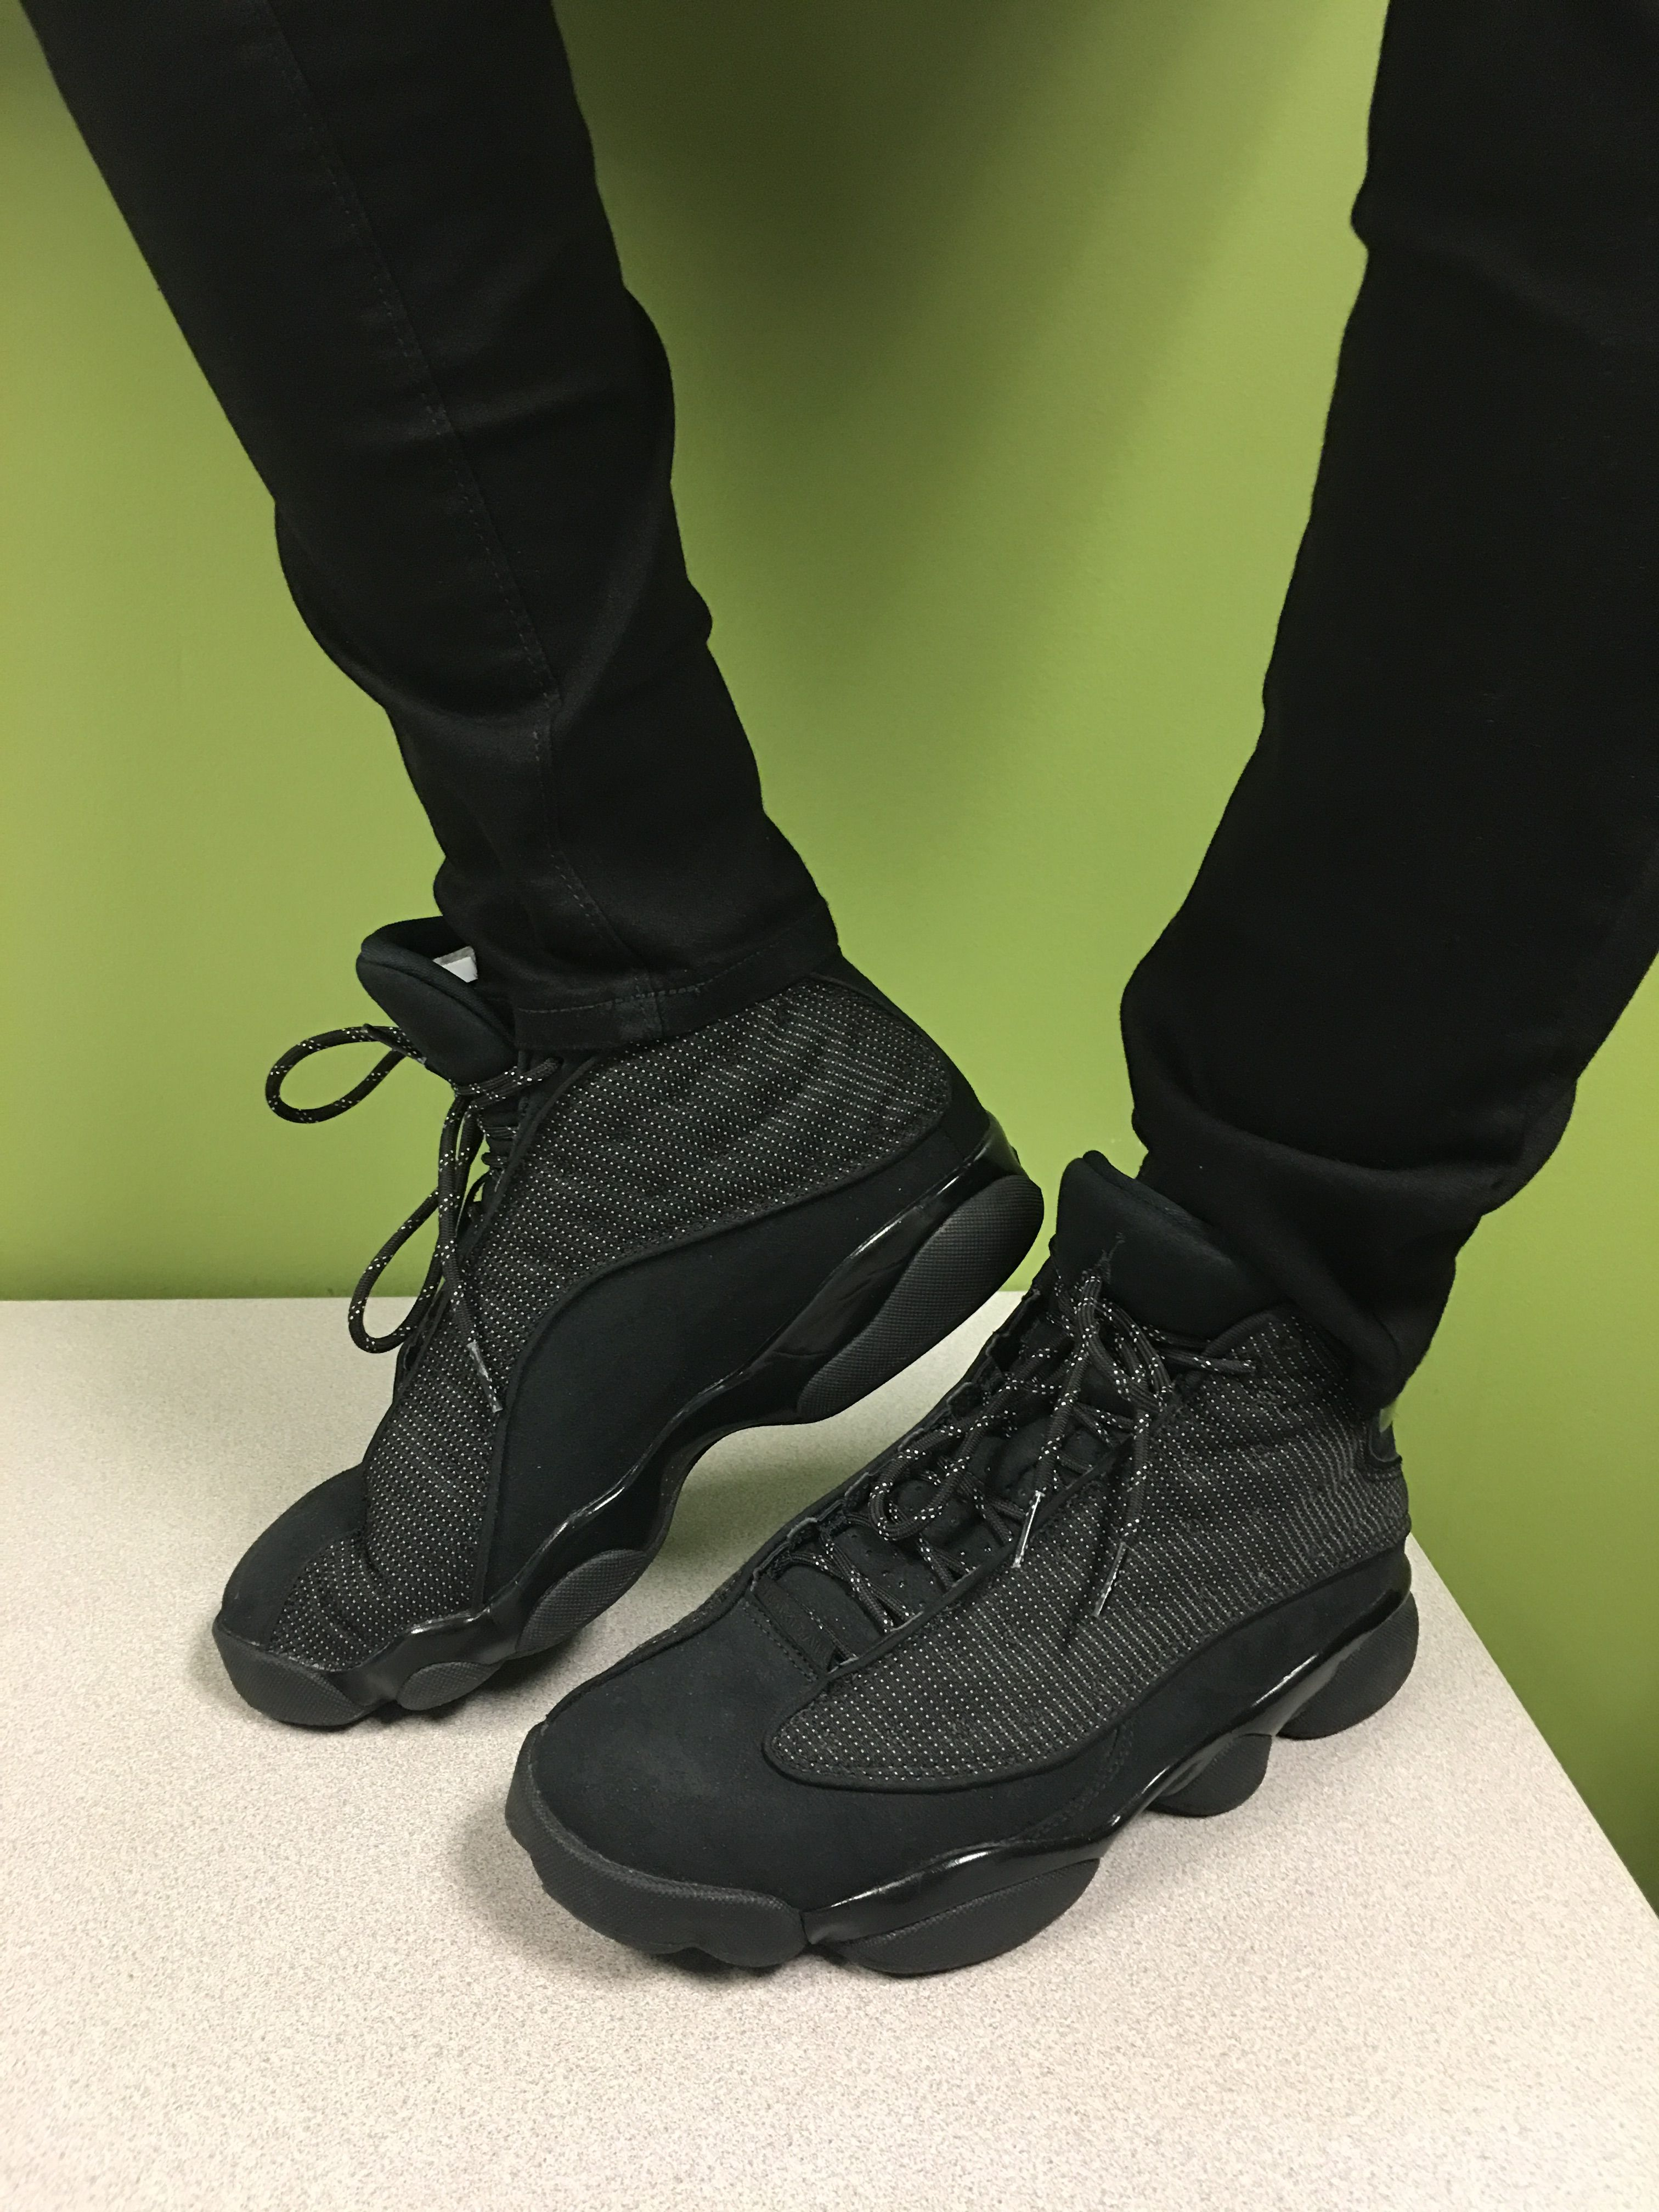 half off 3161f 2e624 Black Cats on Feet. Work flow. Jordan 13s. | Jordans ...